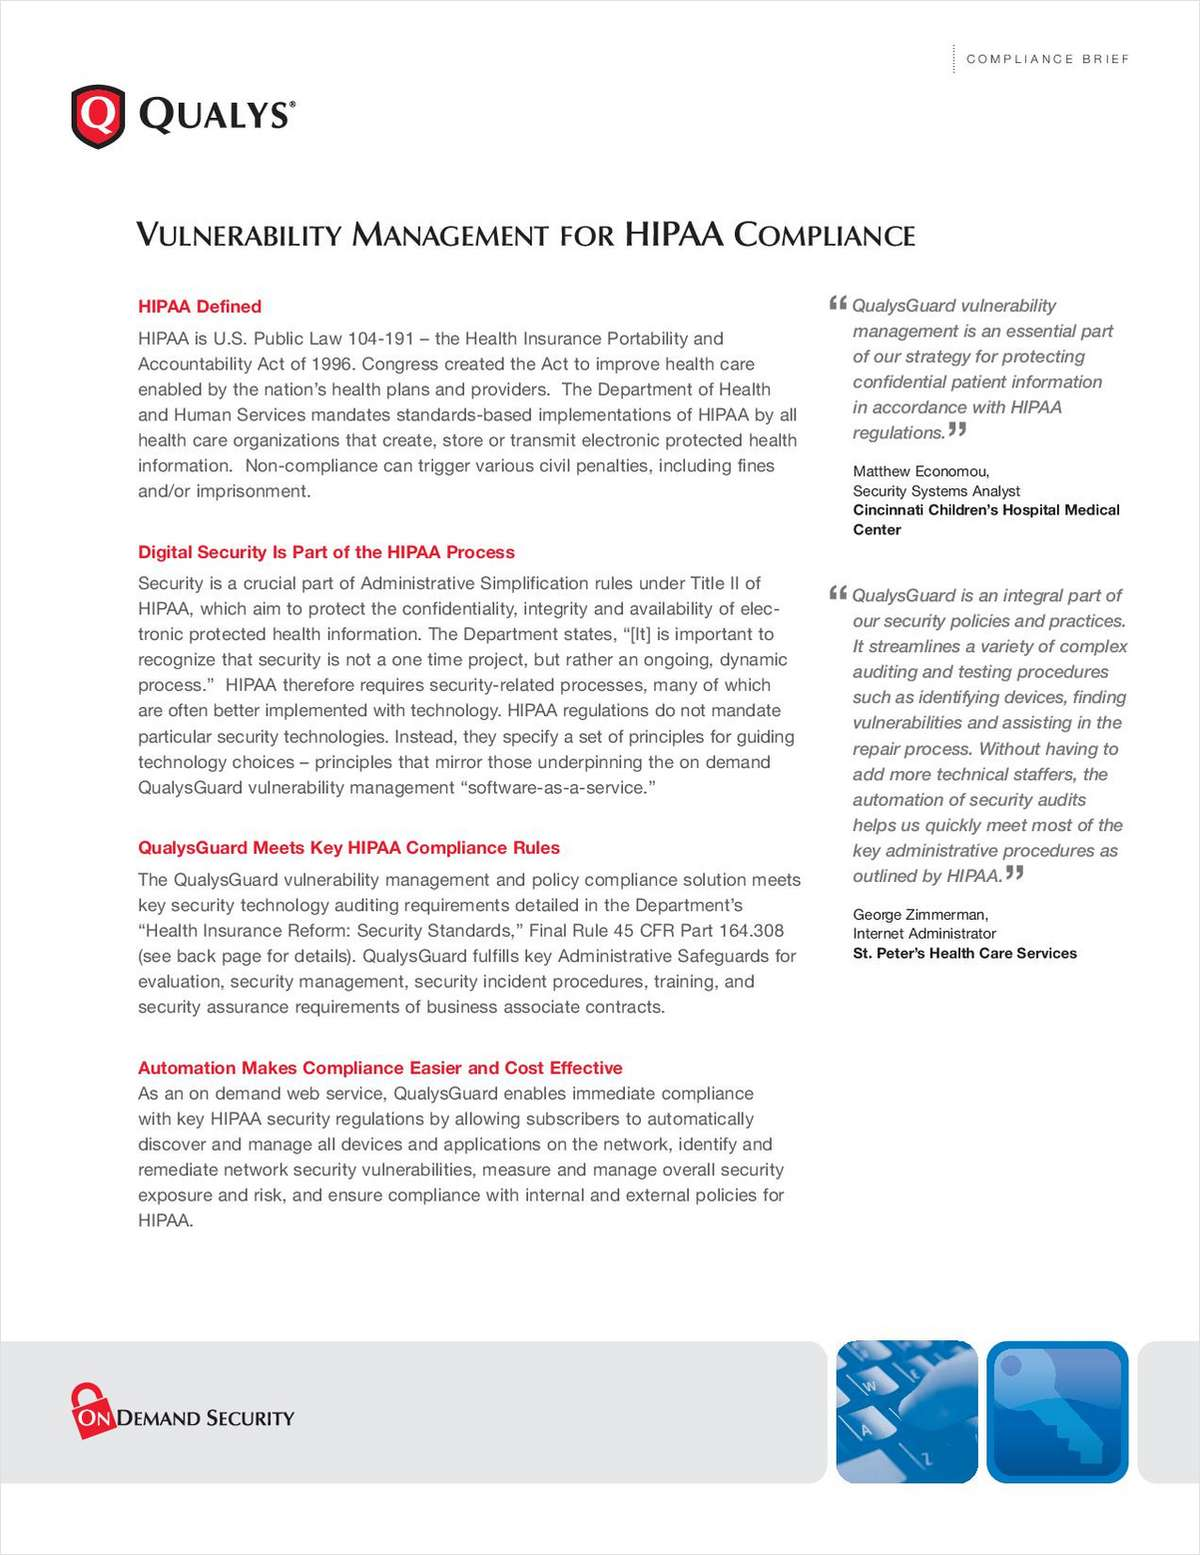 Vulnerability Management for HIPAA Compliance